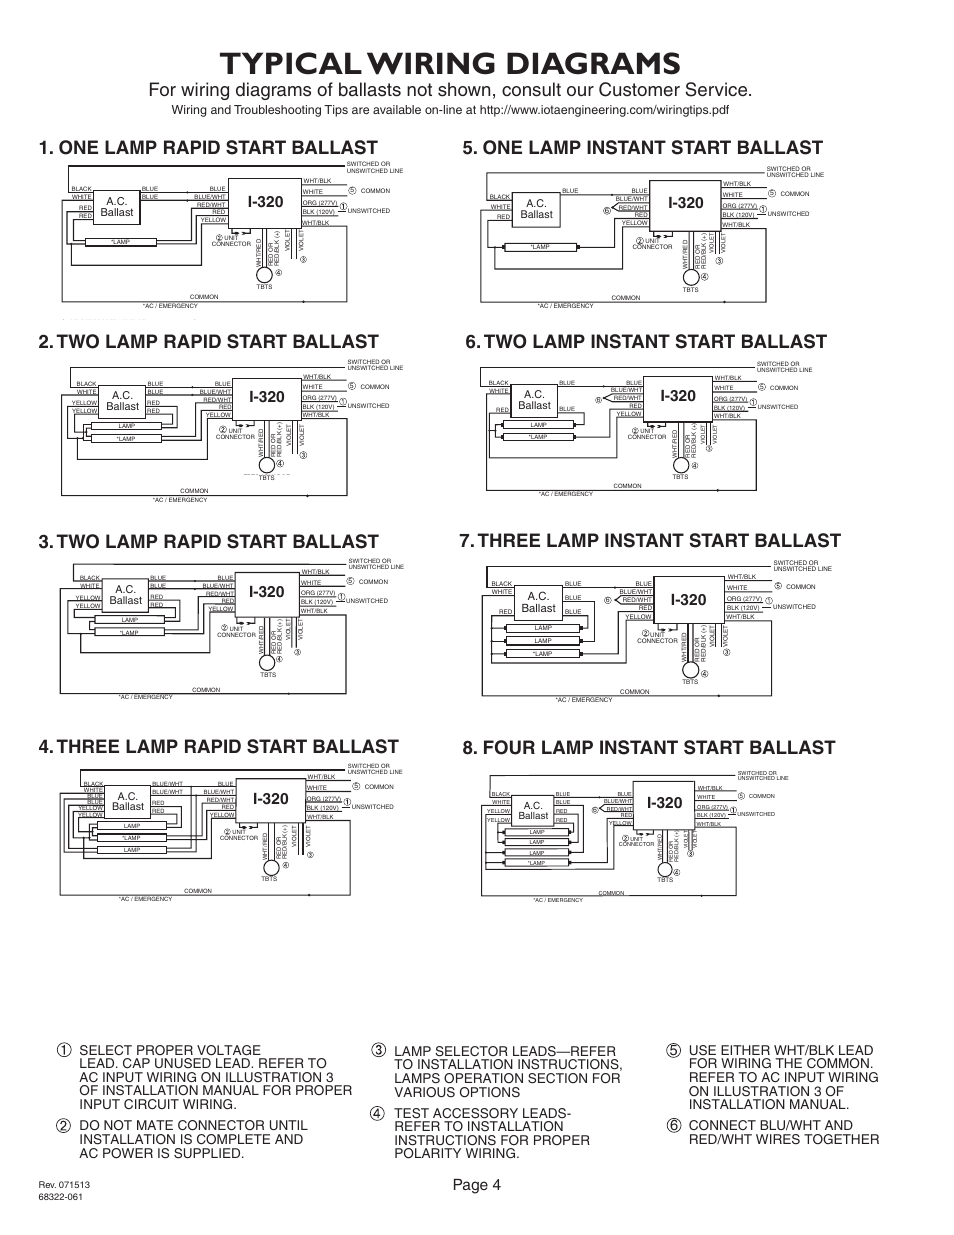 iota i 320 page4 eb60 emergency ballasts wiring diagram diagram wiring diagrams  at gsmx.co